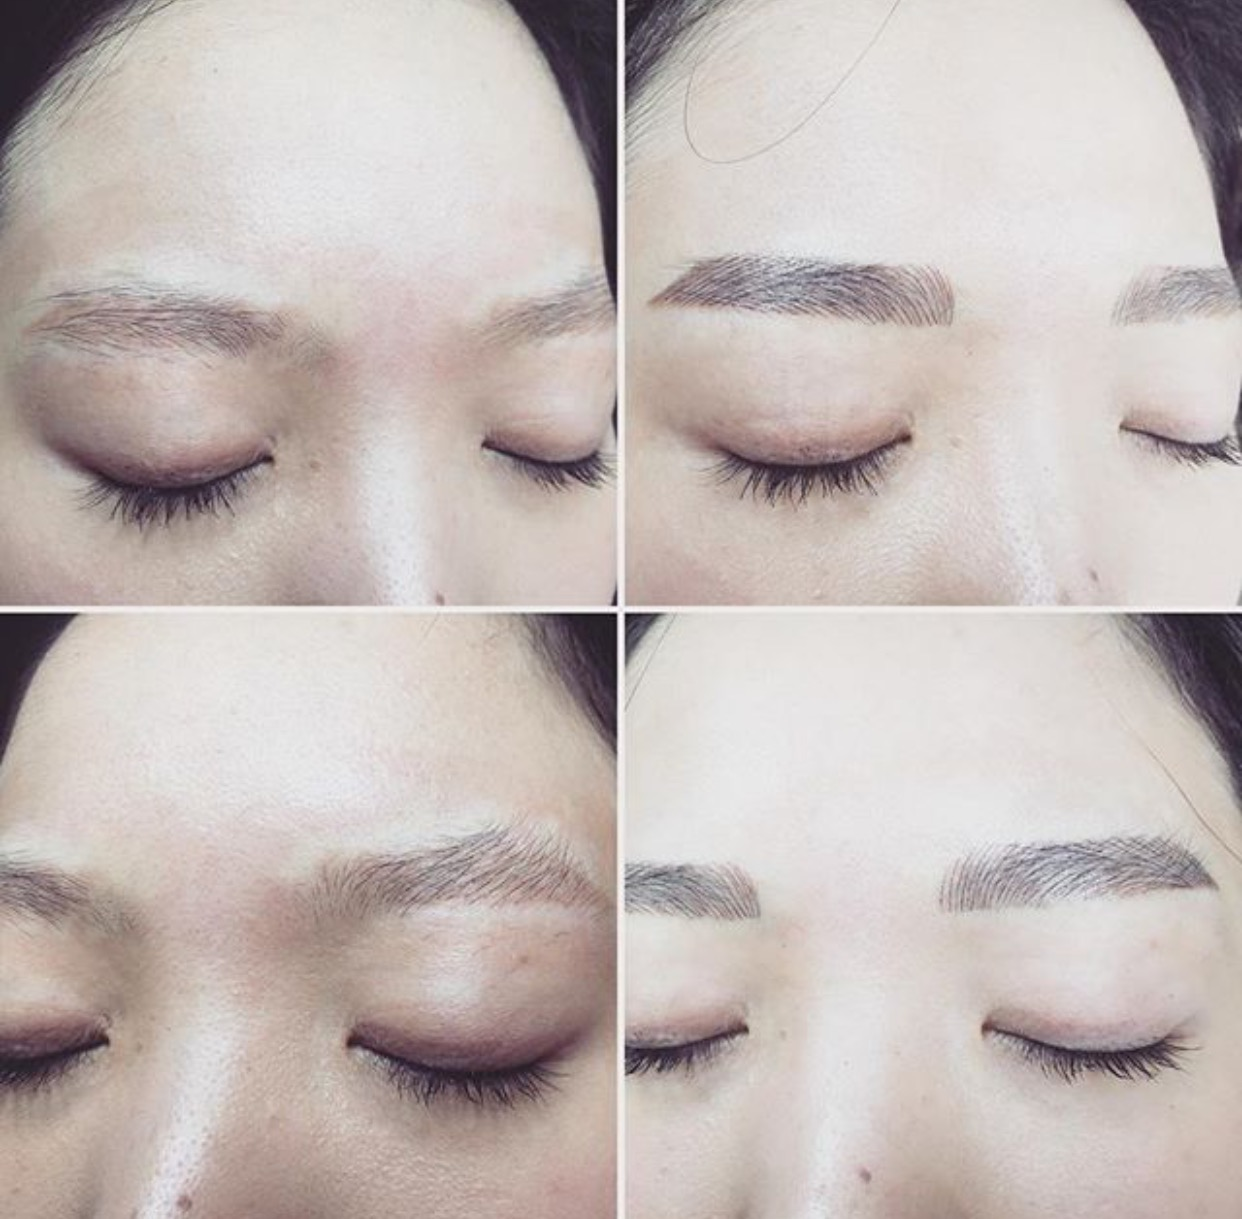 Microblading for eyebrows 3d semi permanent makeup for How is microblading different to tattooing